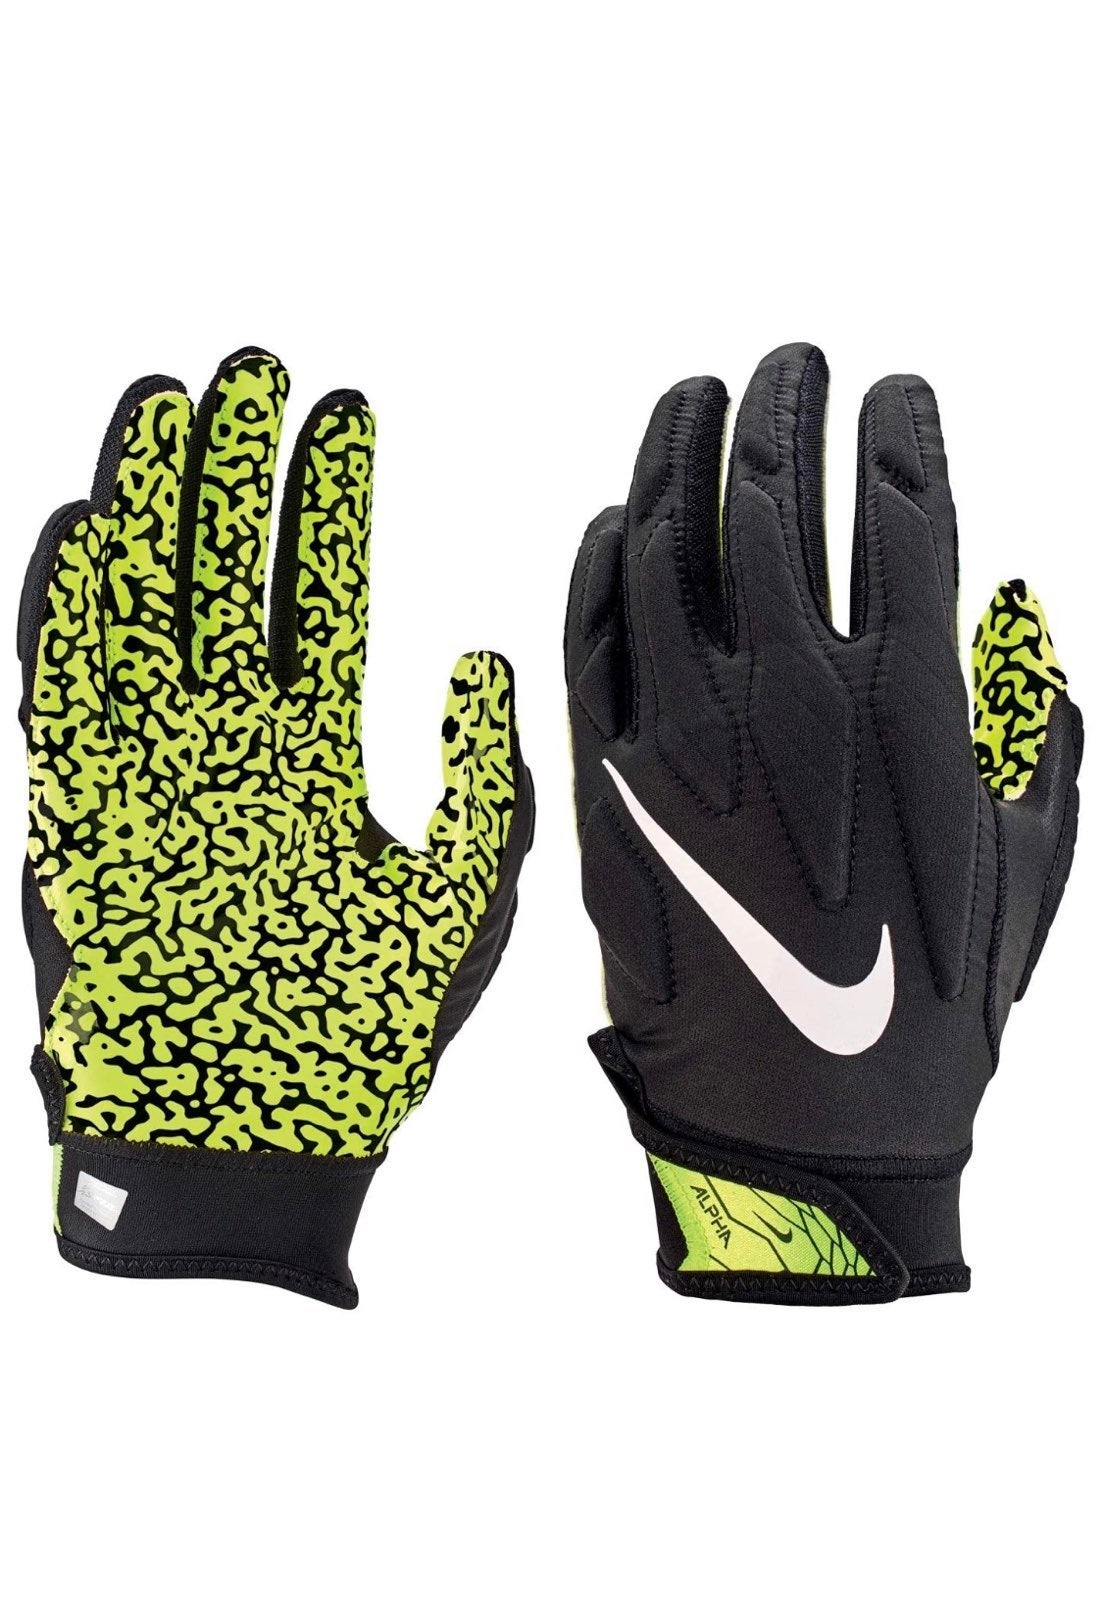 Nike Youth Superbad Football Gloves M